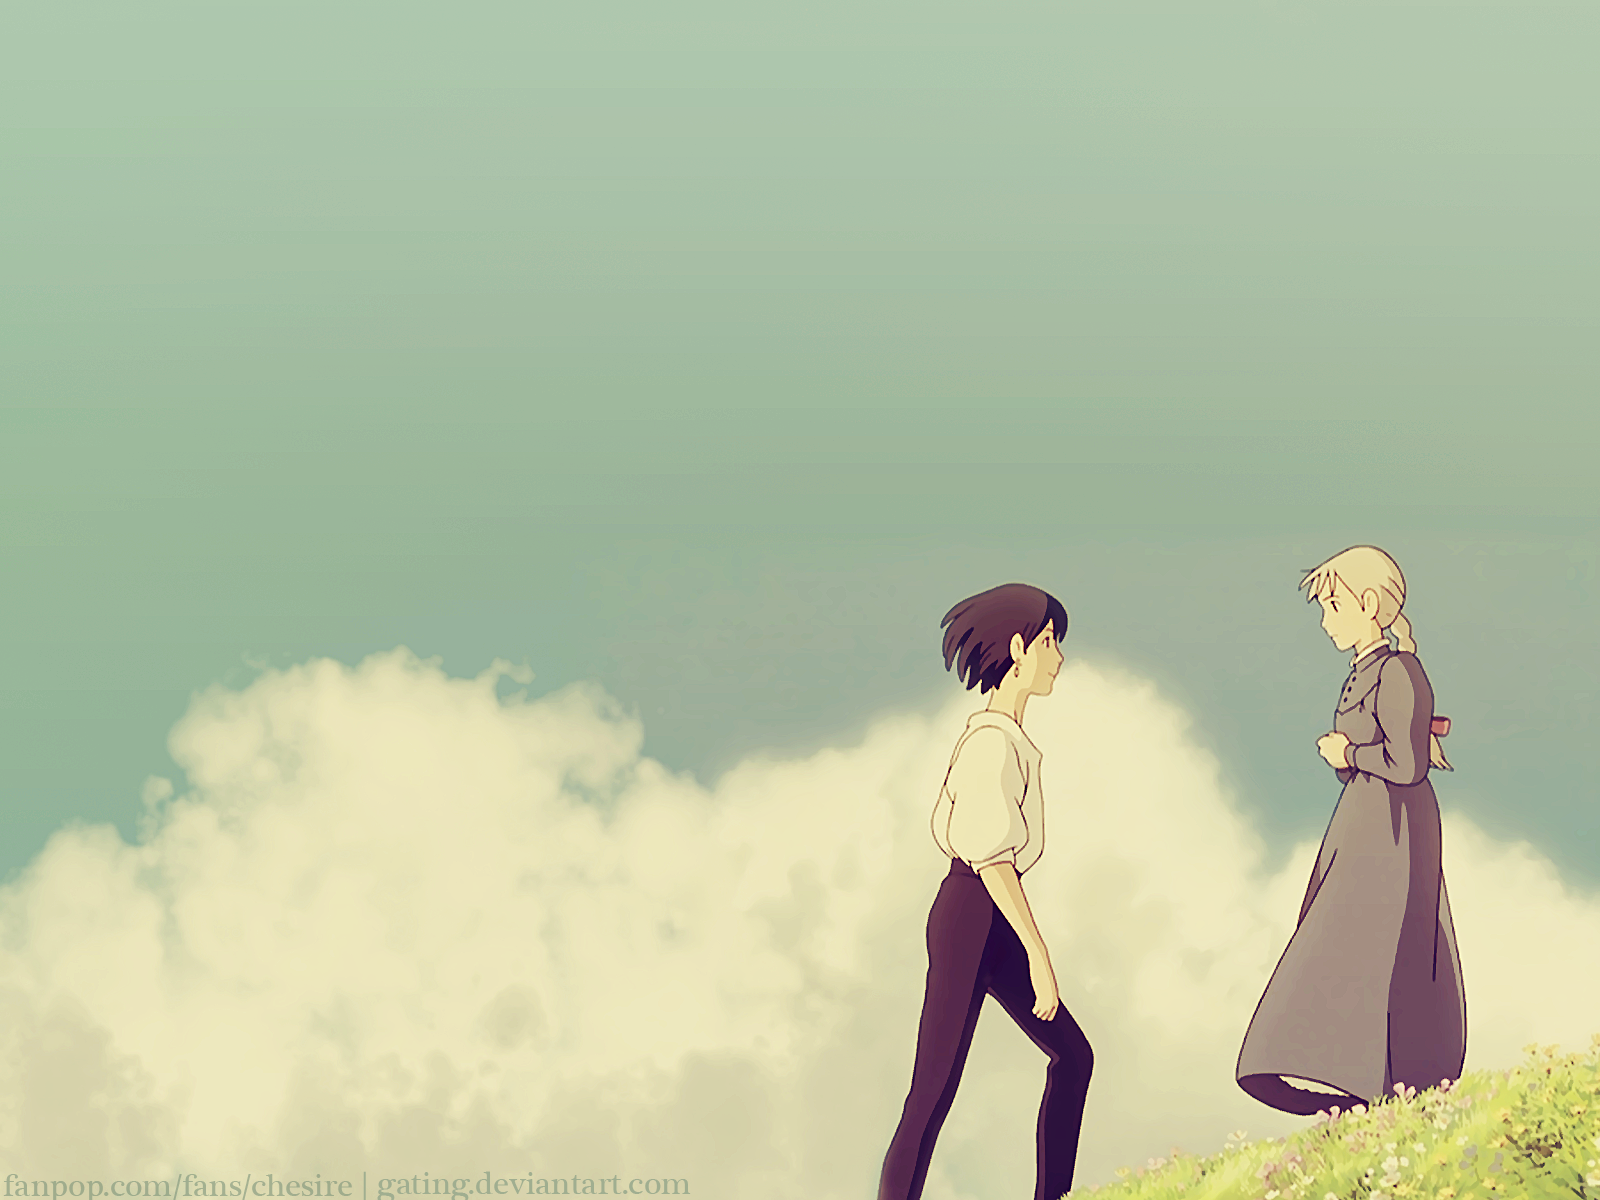 Howl S Moving Castle Wallpaper Howl S Moving Castle Wallpaper Howls Moving Castle Wallpaper Howl And Sophie Howls Moving Castle